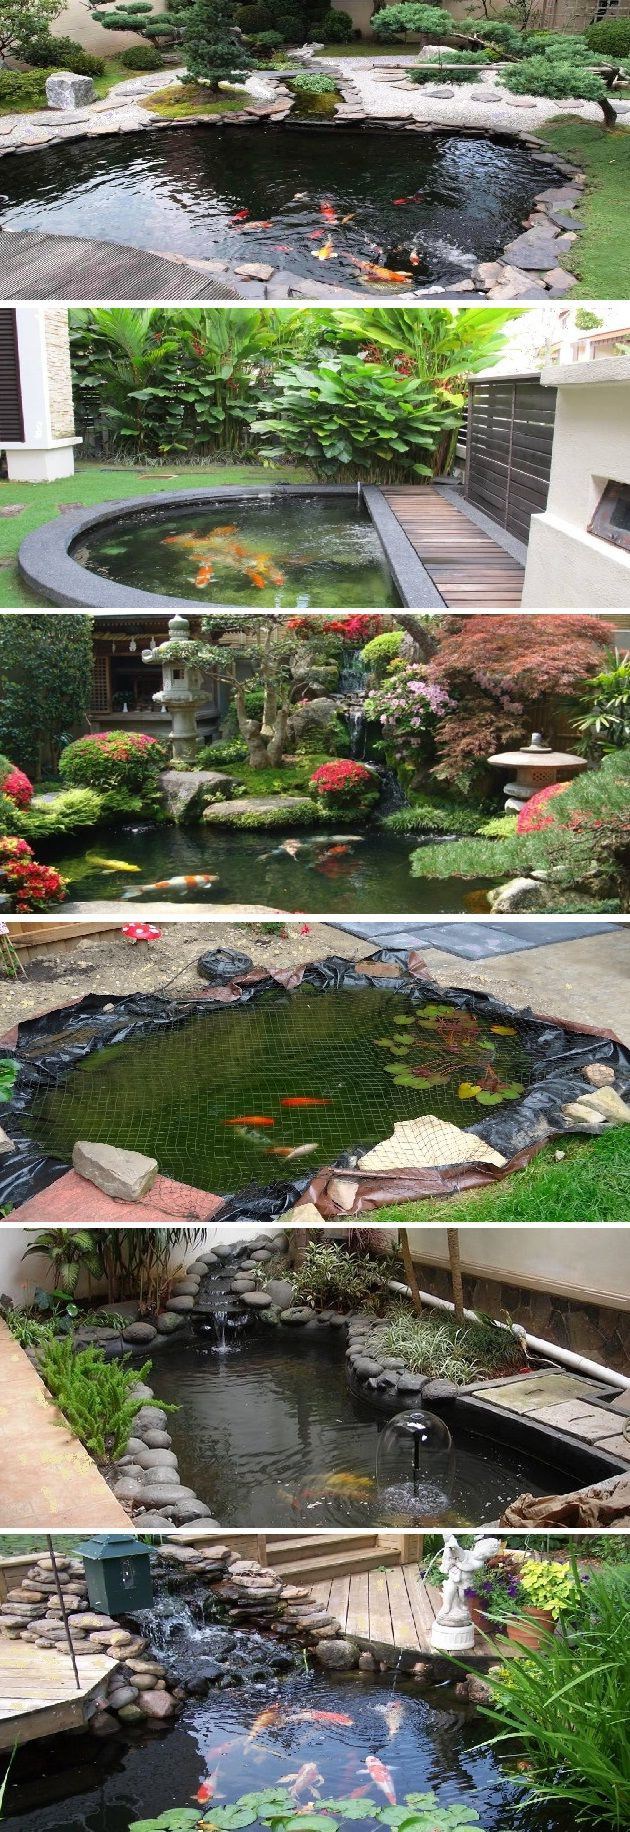 Small Koi Pond Design Ideas Pond Rocks Garden Pond Design